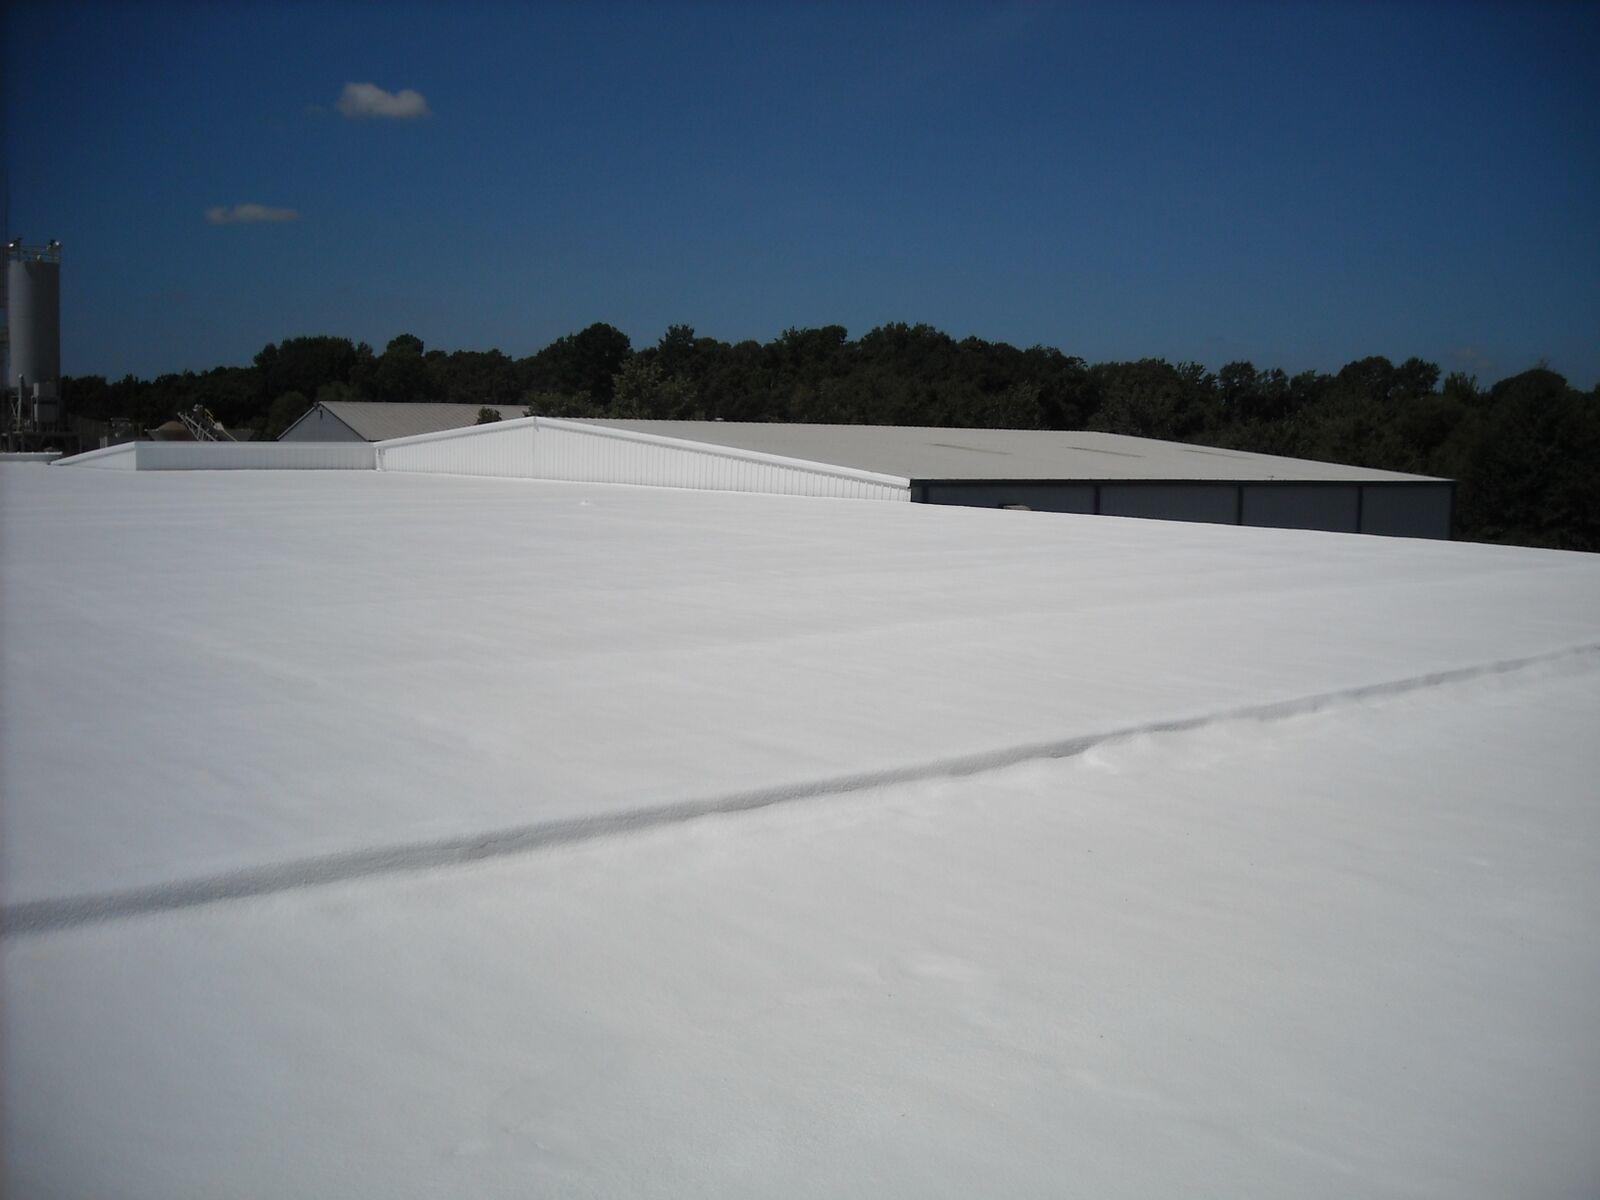 A & L Foam Roofing & Insulation image 26